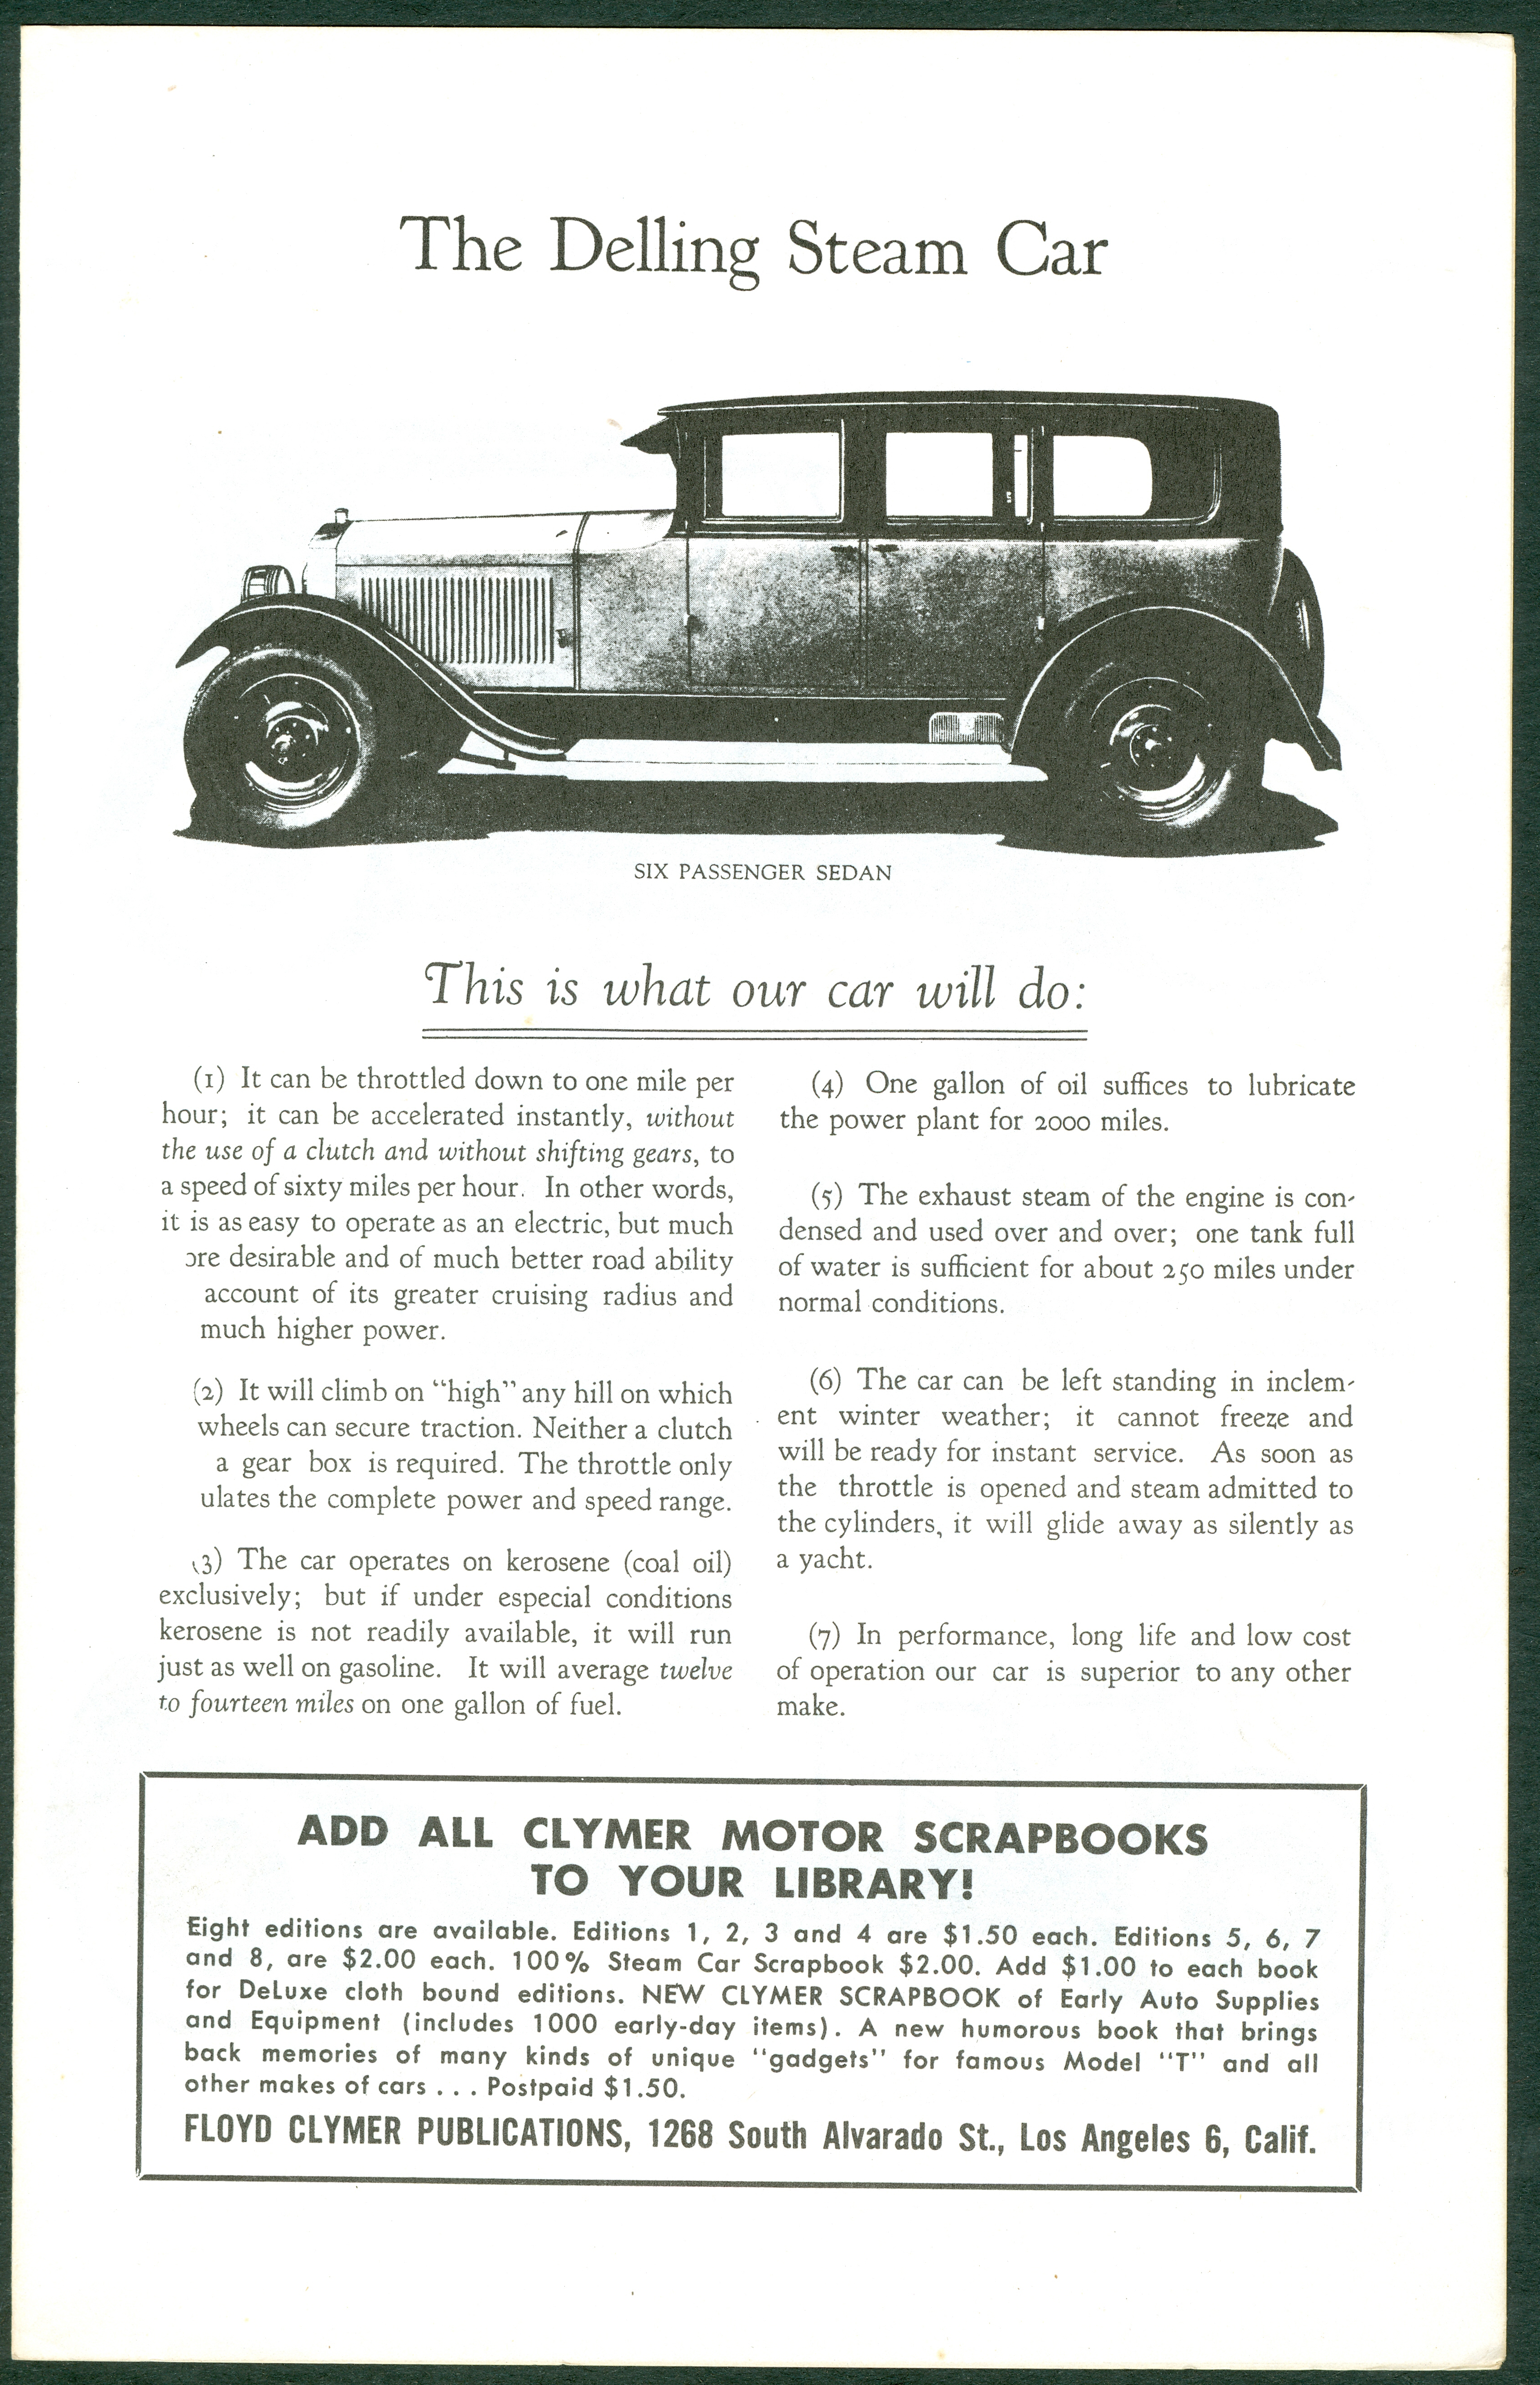 Delling Motors Company booklet assembled by Floyd Clymer p. 1